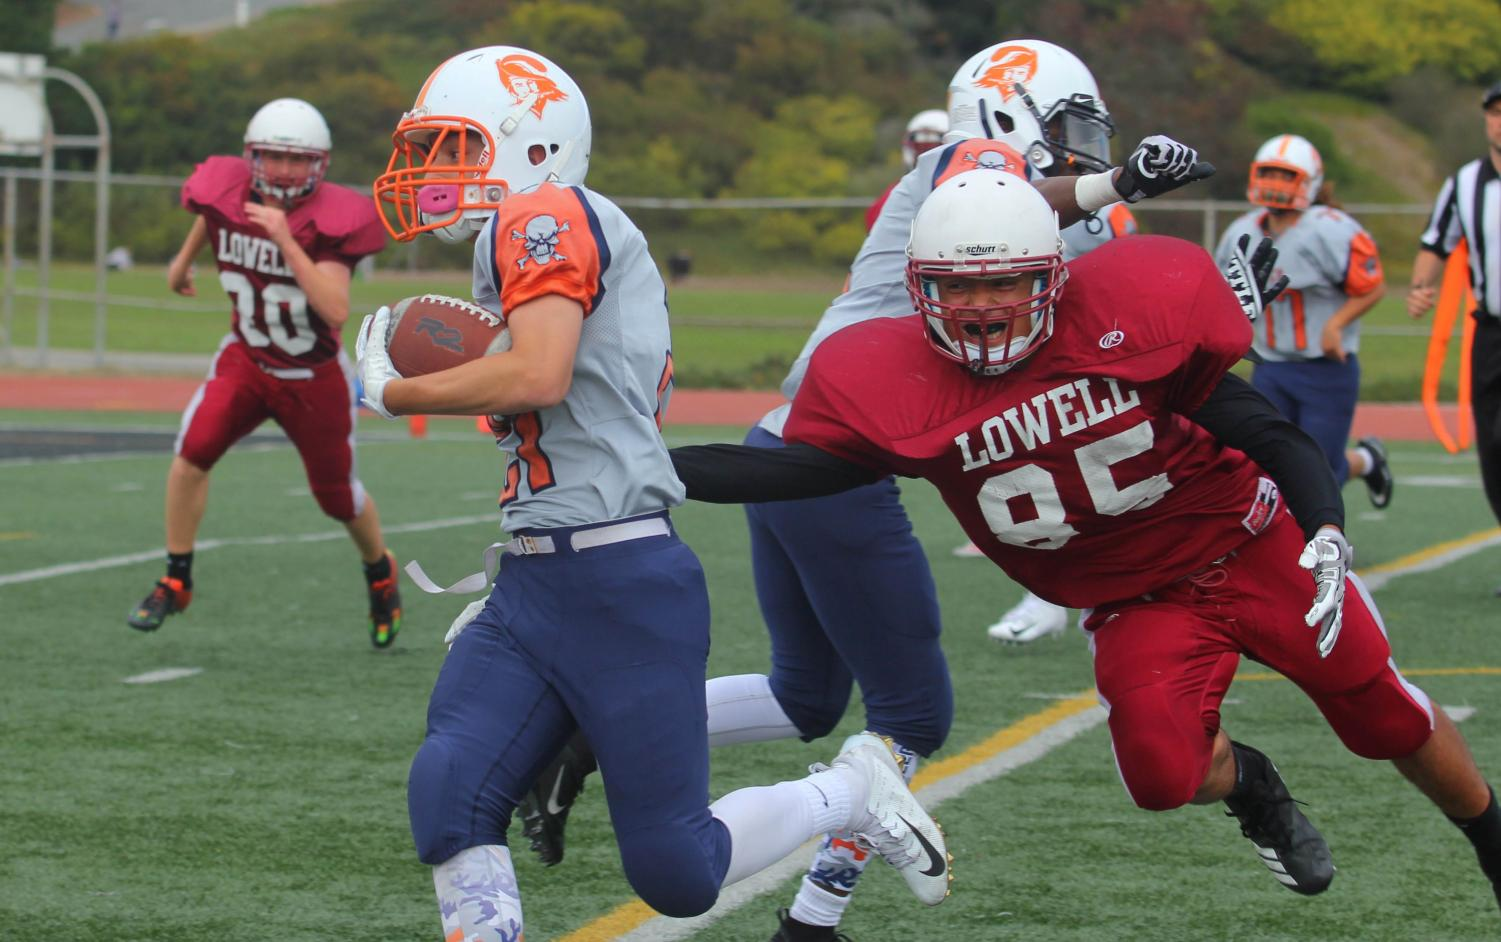 Sophomore running back and middle linebacker Anthony Serrano attempts to tackle his opponent.